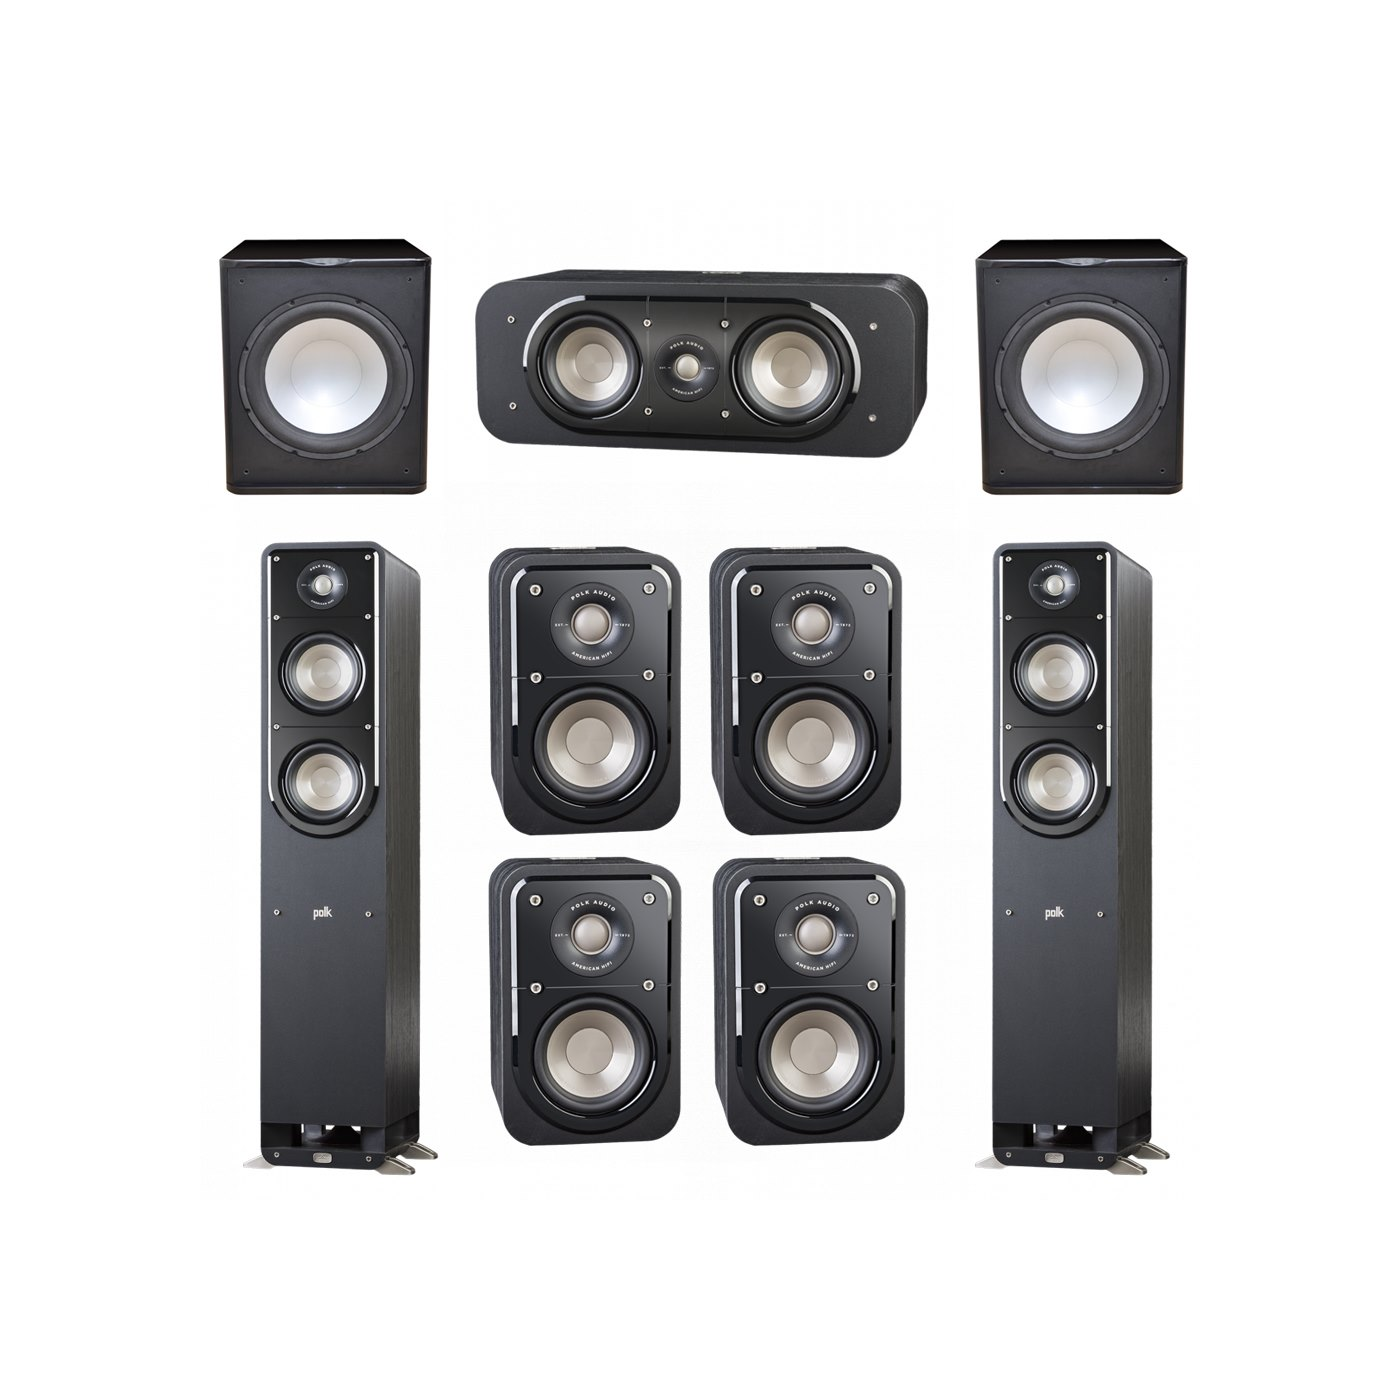 Polk Audio Signature 7.2 System with 2 S50 Tower Speaker, 1 Polk S30 Center Speaker, 4 Polk S10 Bookshelf Speaker, 2 Premier Acoustic PA-150 Powered Subwoofer